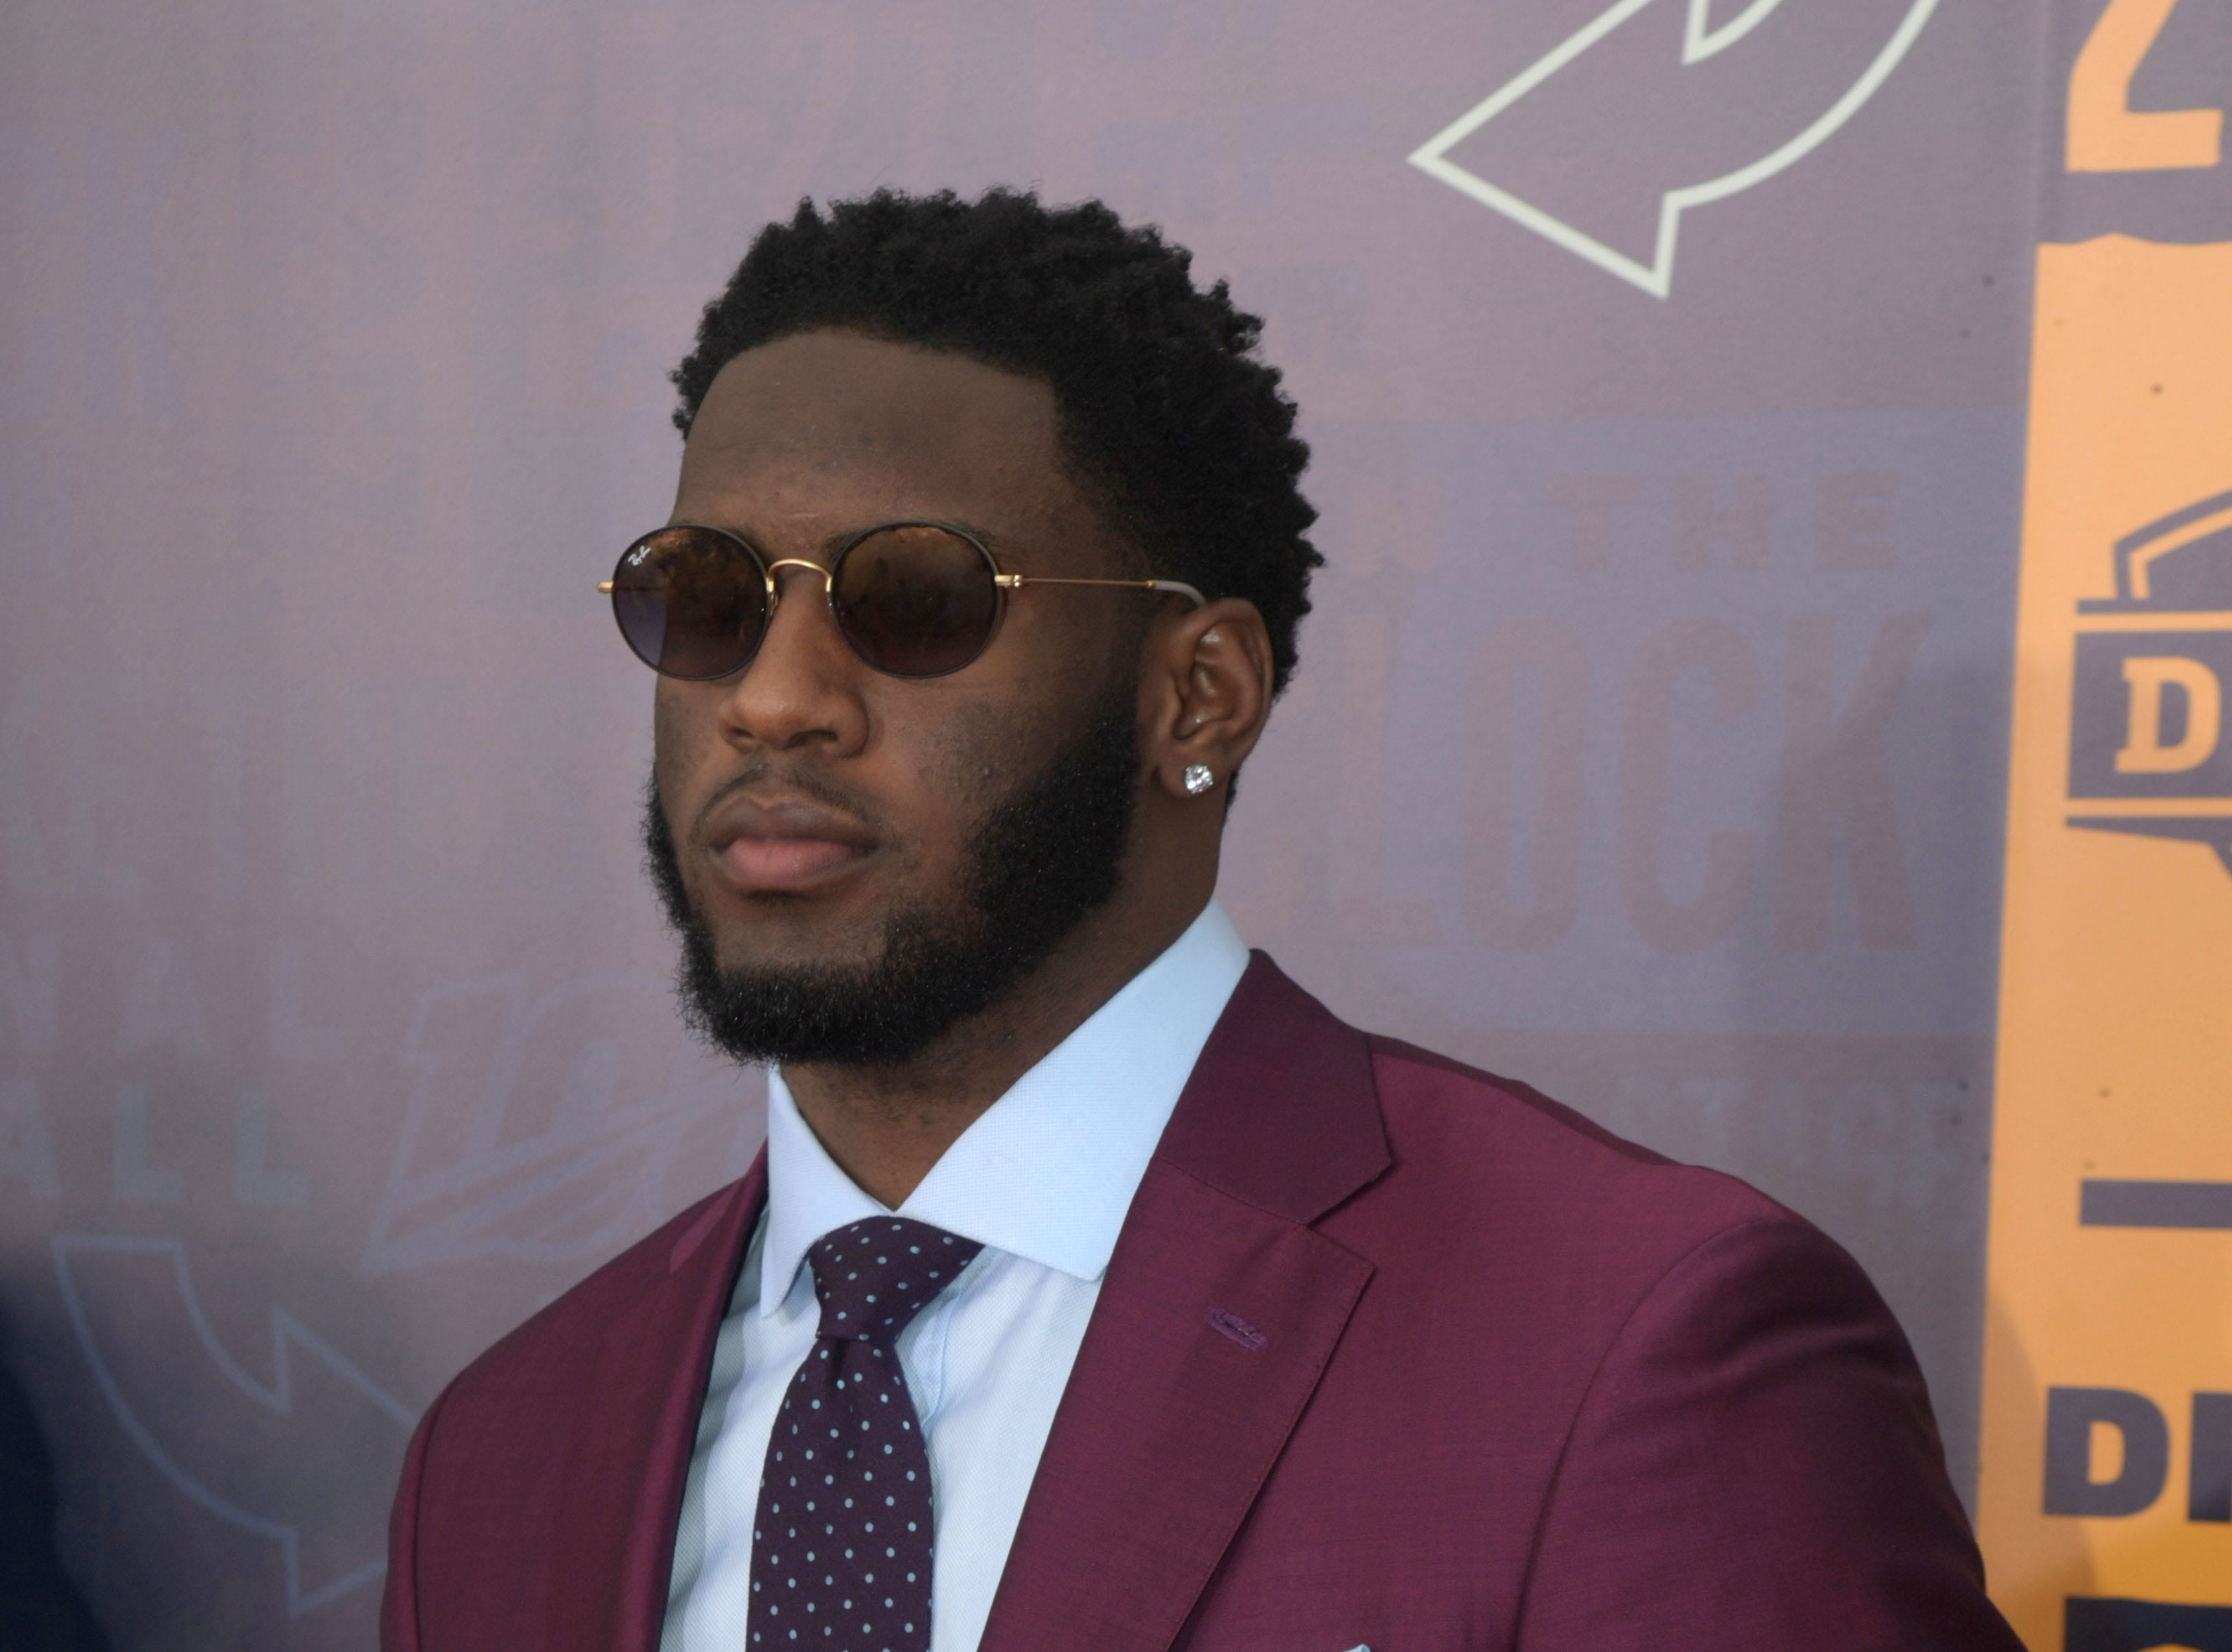 Apr 25, 2019; Nashville, TN, USA; Brian Burns (Florida State) on the red carpet prior to the first round of the 2019 NFL Draft in Downtown Nashville. Mandatory Credit: Kirby Lee-USA TODAY Sports